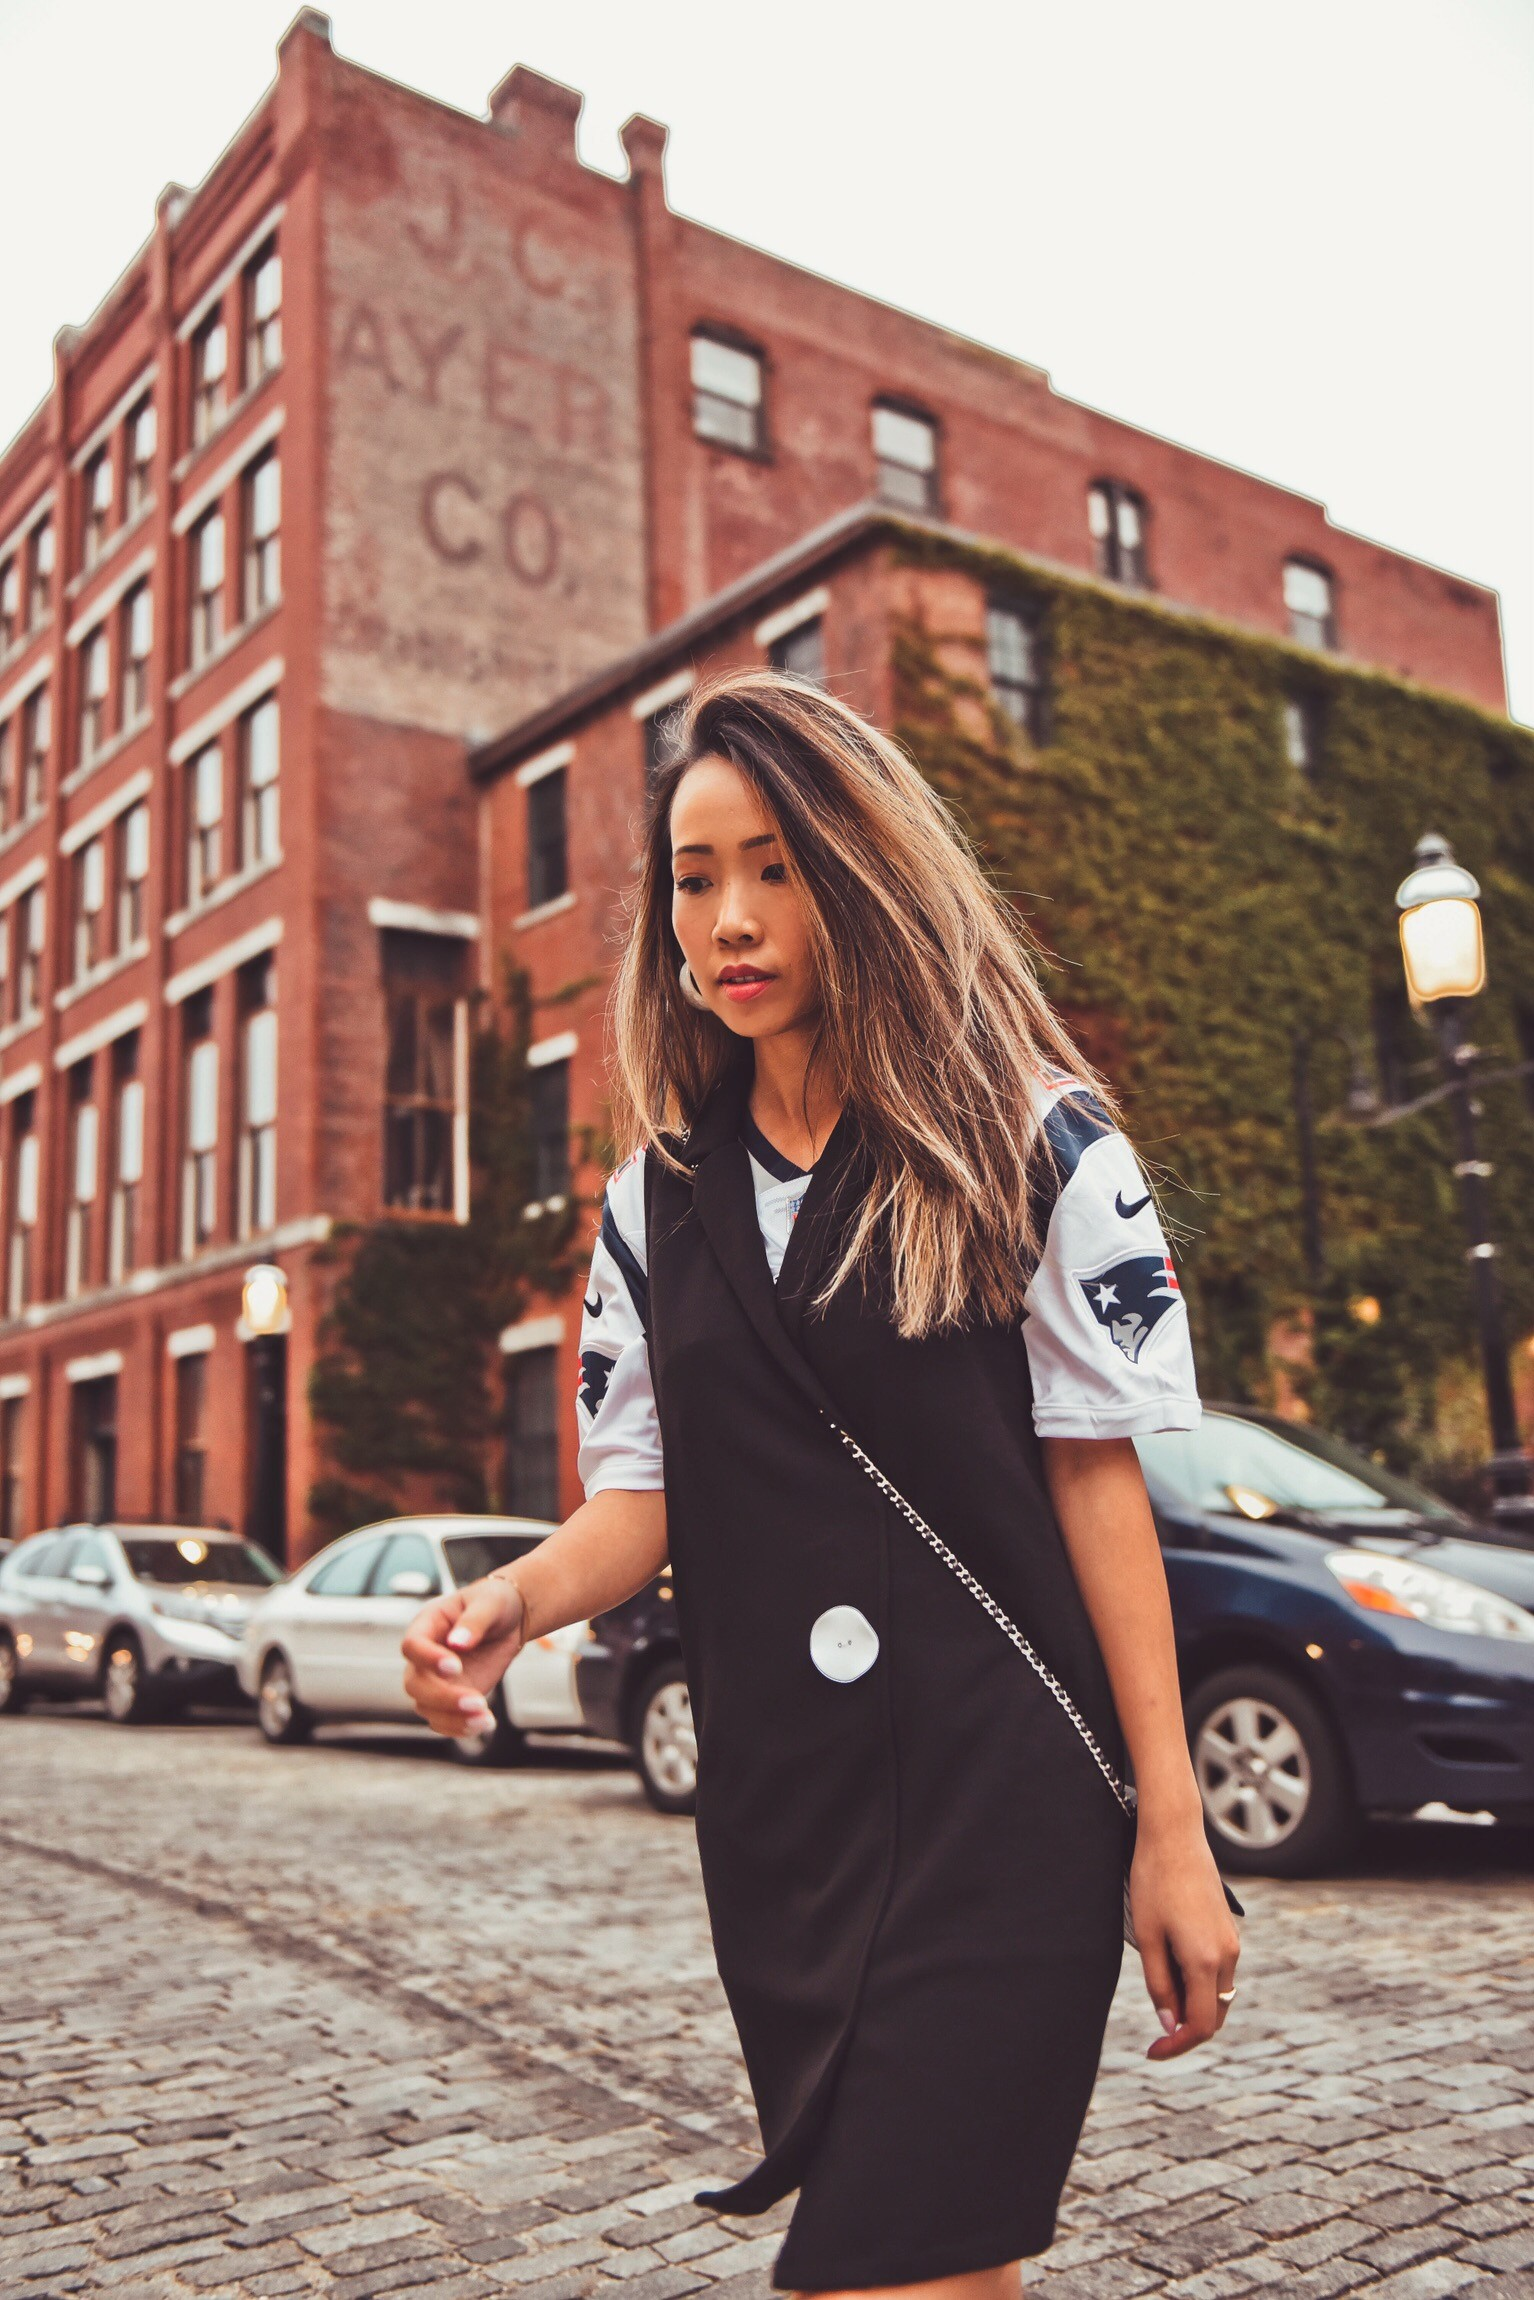 Jerseys Aren't Just for Game Day: 3 Stylish Ways to Rock Them